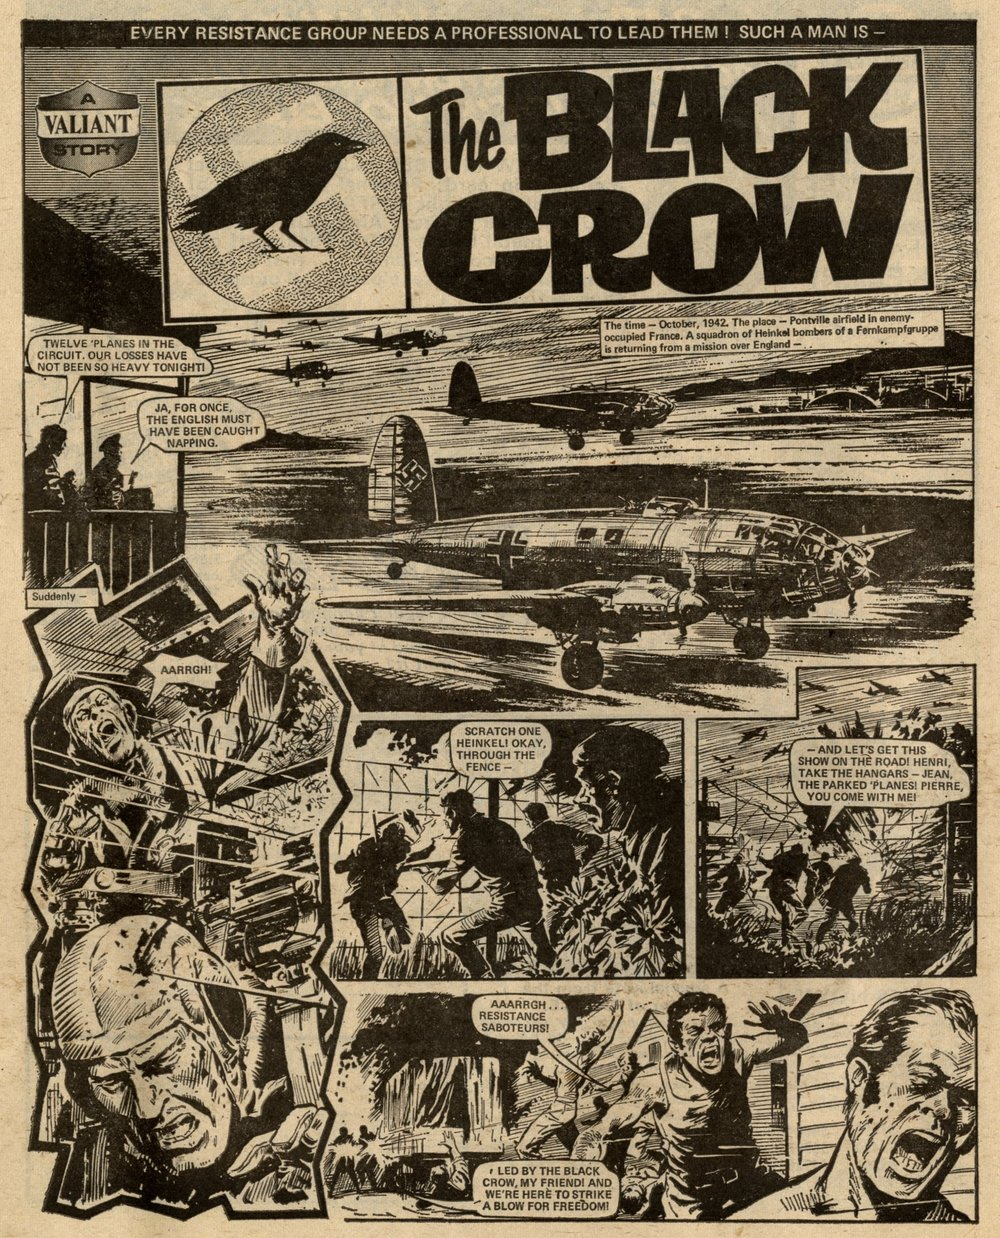 The Black Crow: Scott Goodall (writer), Eric Bradbury (artist)